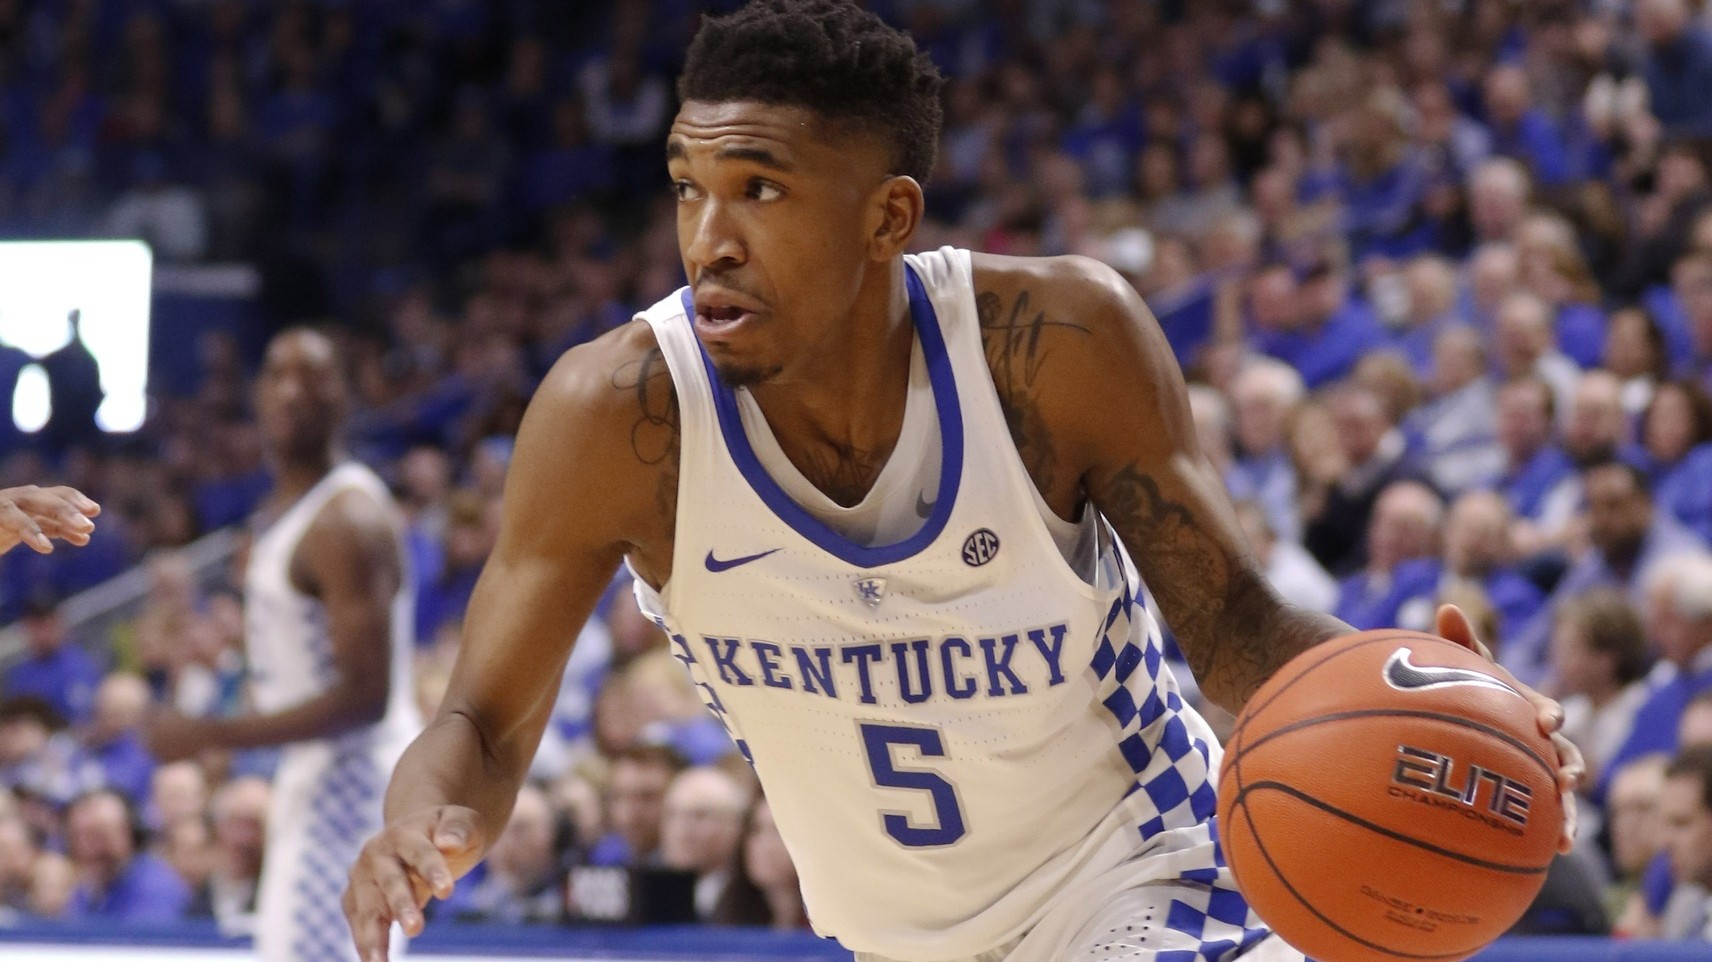 Malik Monk Is Breaking The Mold, But Is That What The NBA Wants?